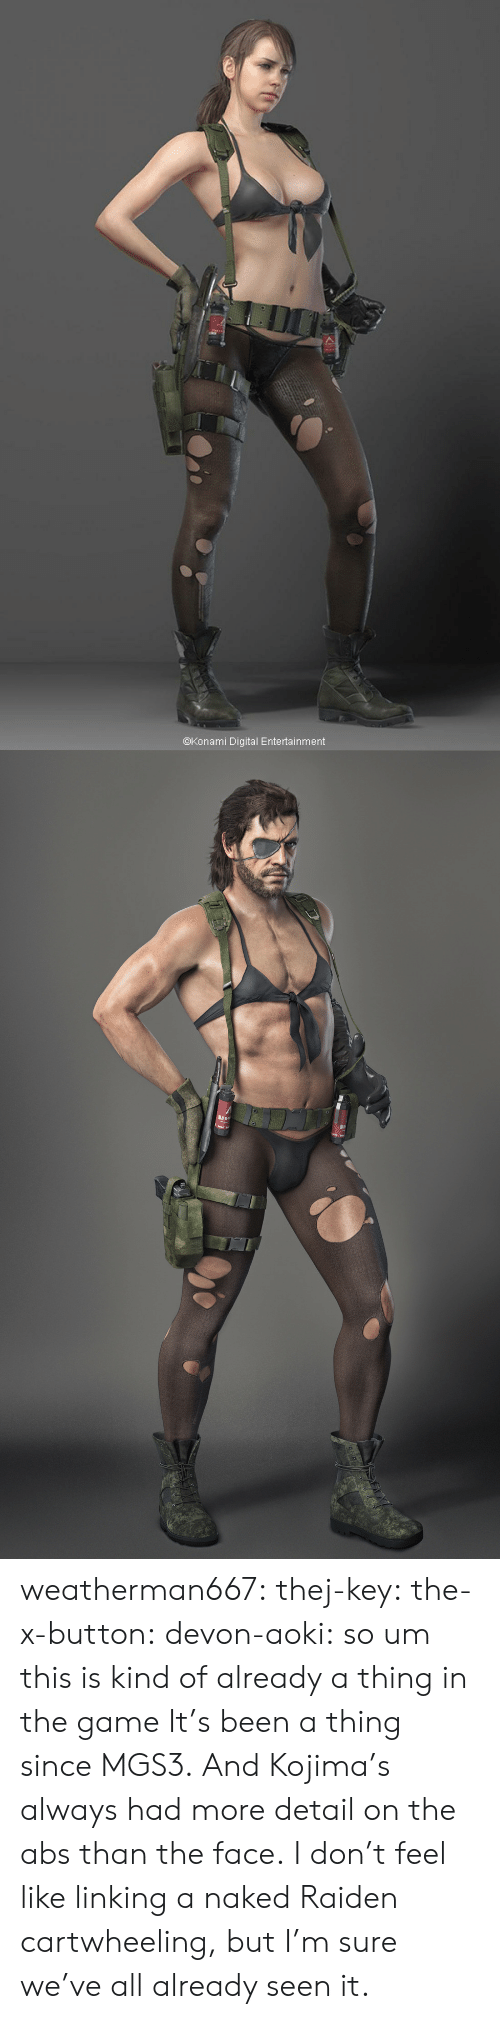 Gif, The Game, and Tumblr: @Konami Digital Entertainment weatherman667: thej-key:  the-x-button:  devon-aoki:  so um this is kind of already a thing in the game   It's been a thing since MGS3. And Kojima's always had more detail on the abs than the face.  I don't feel like linking a naked Raiden cartwheeling, but I'm sure we've all already seen it.